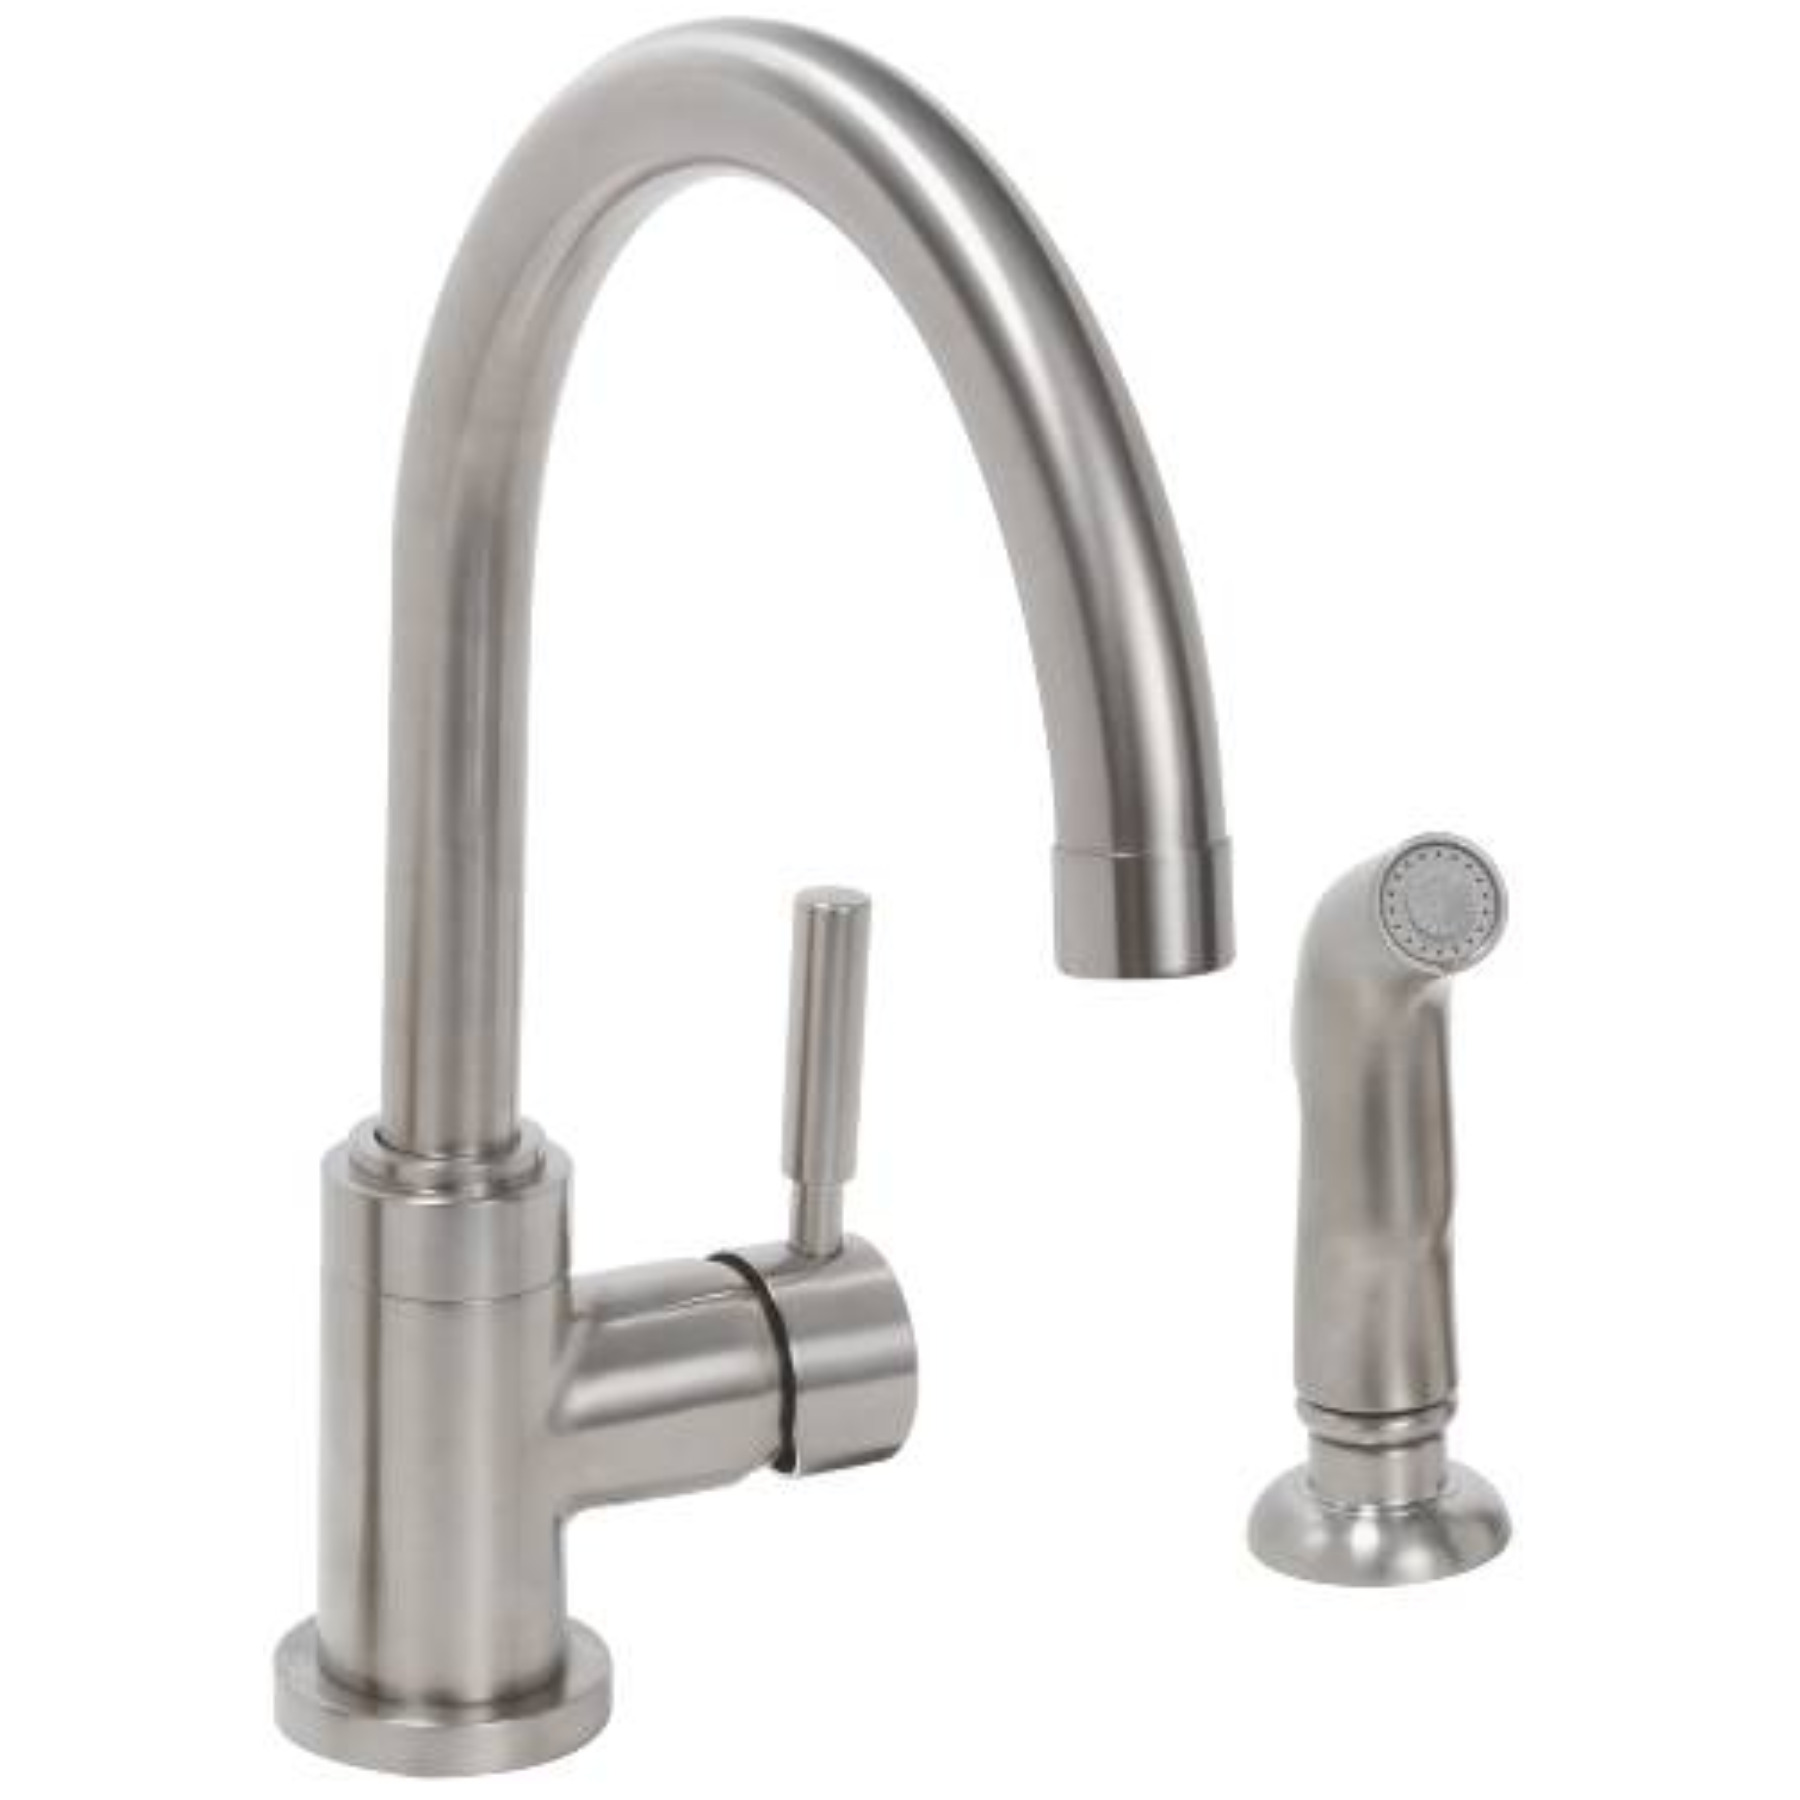 Premier Essen Lead-Free Single-Handle High-Arc Kitchen Faucet PVD Brushed Nickel